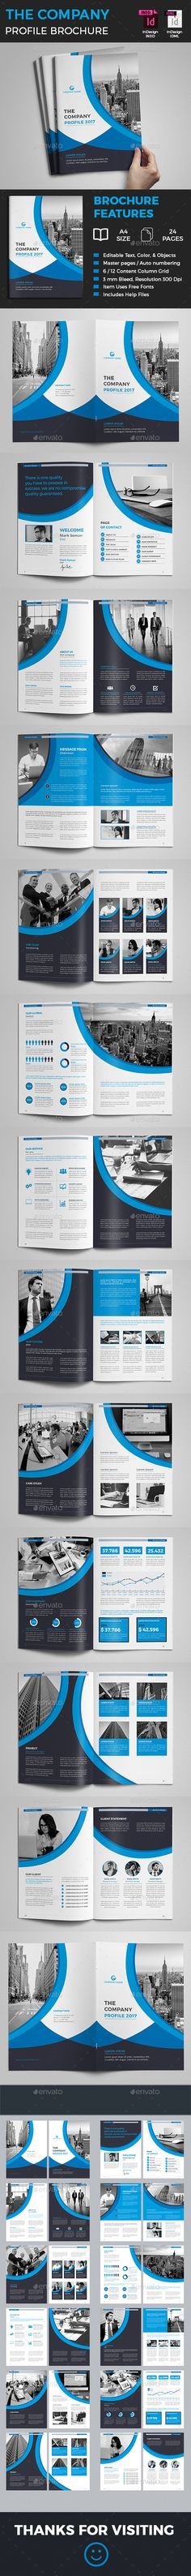 2017 Company Profile Template Cleaning companies, A4 paper and - professional business profile template